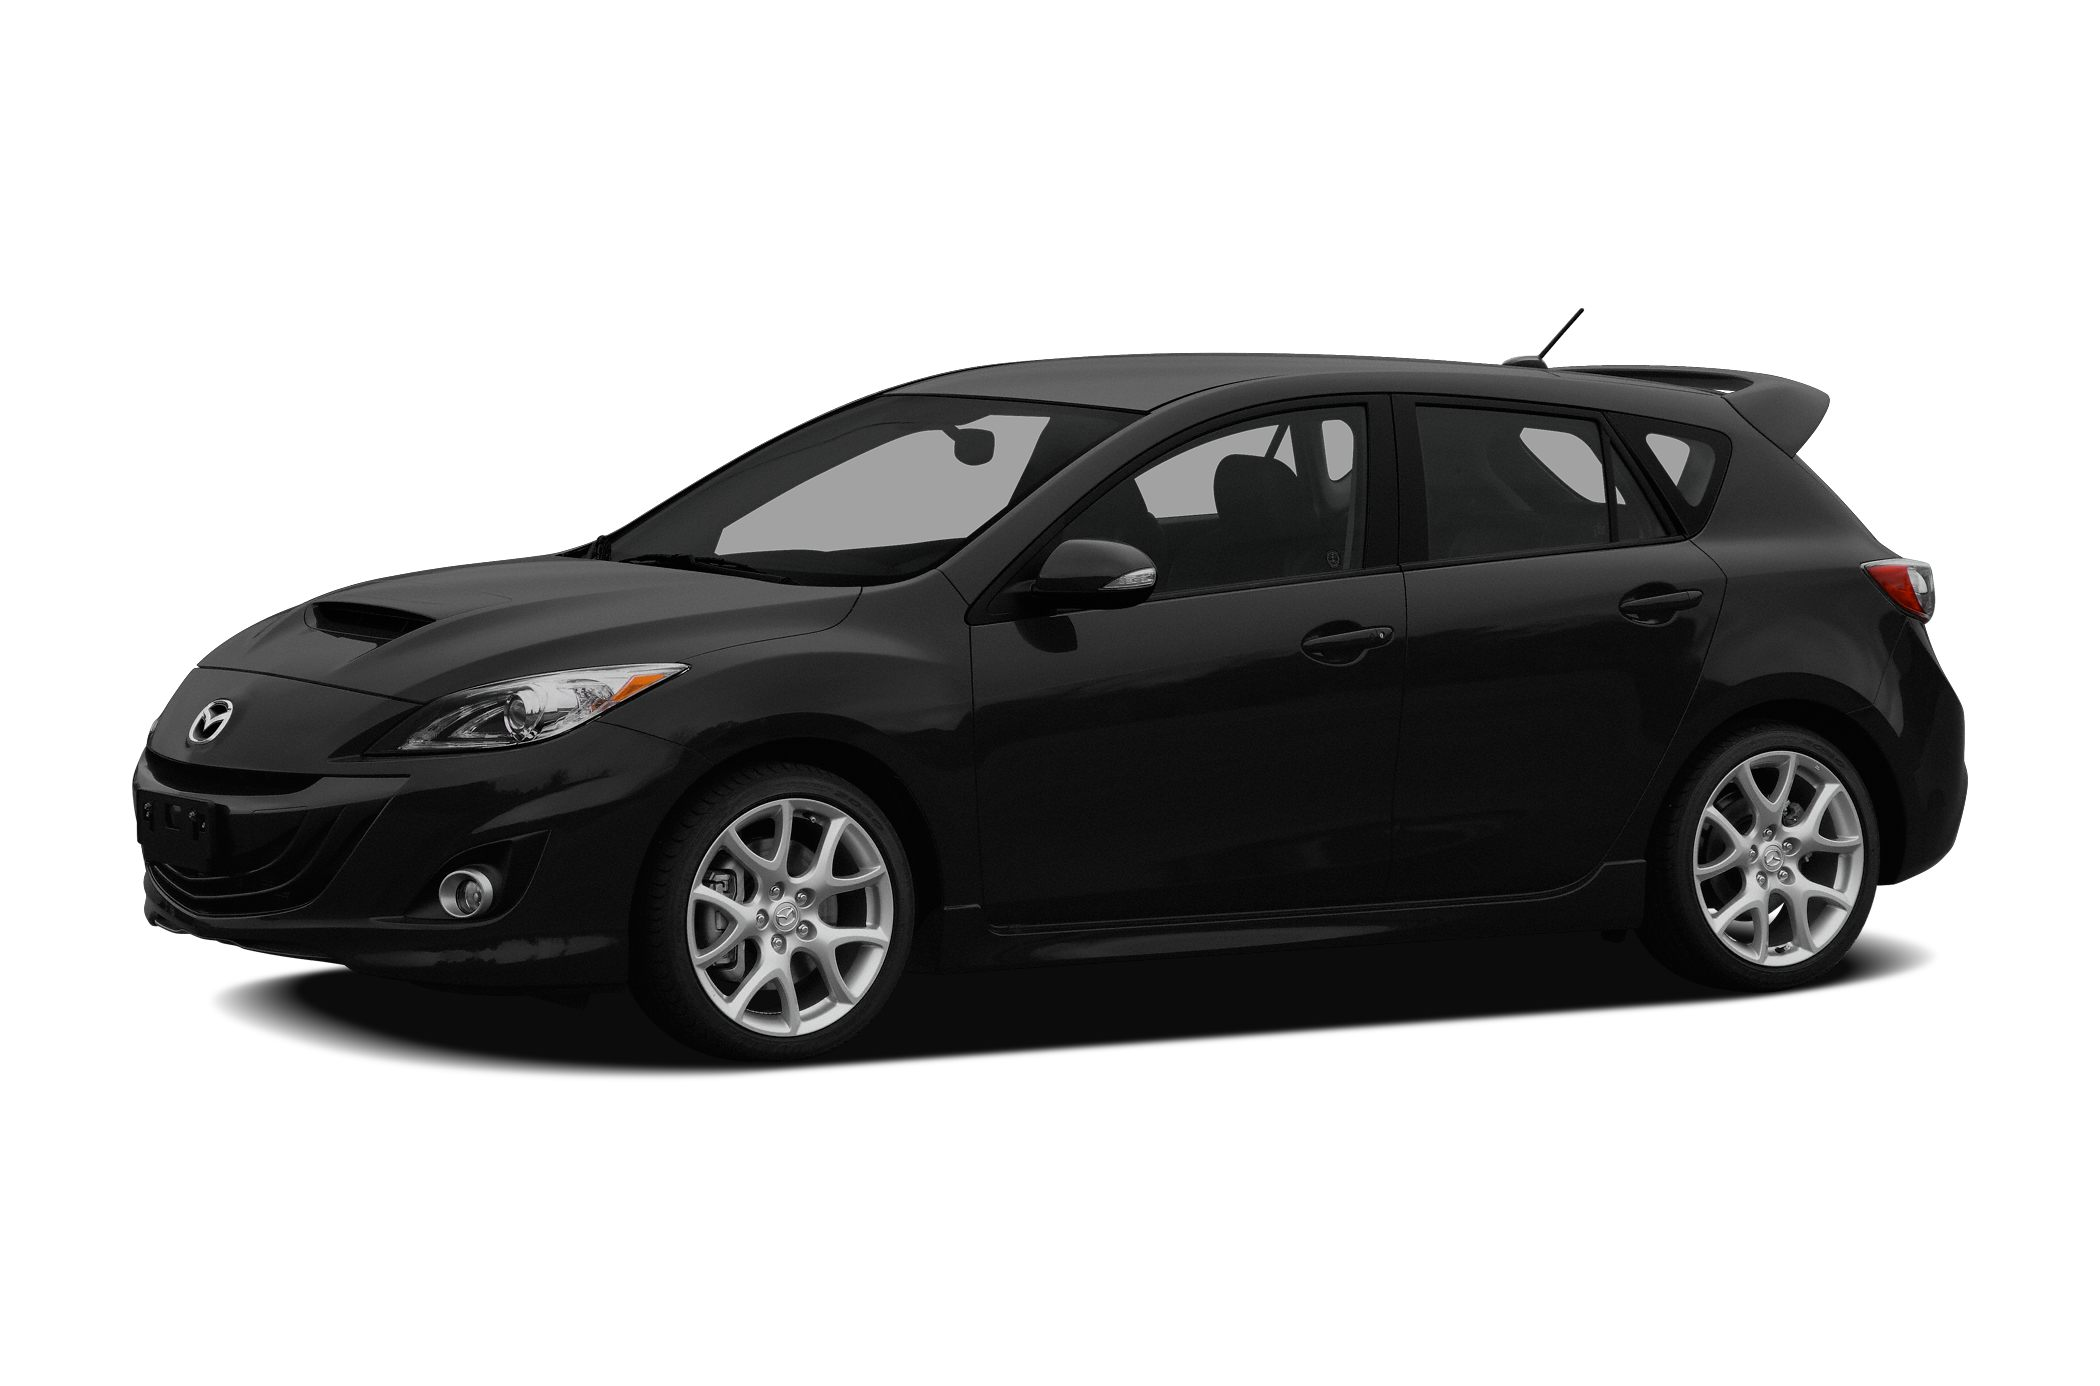 2011 Mazda MAZDASPEED3 Sport 3-DAY EXCHANGEONE PRICE STOP NO HASSLE NO HAGGLE CAR BUYING EX